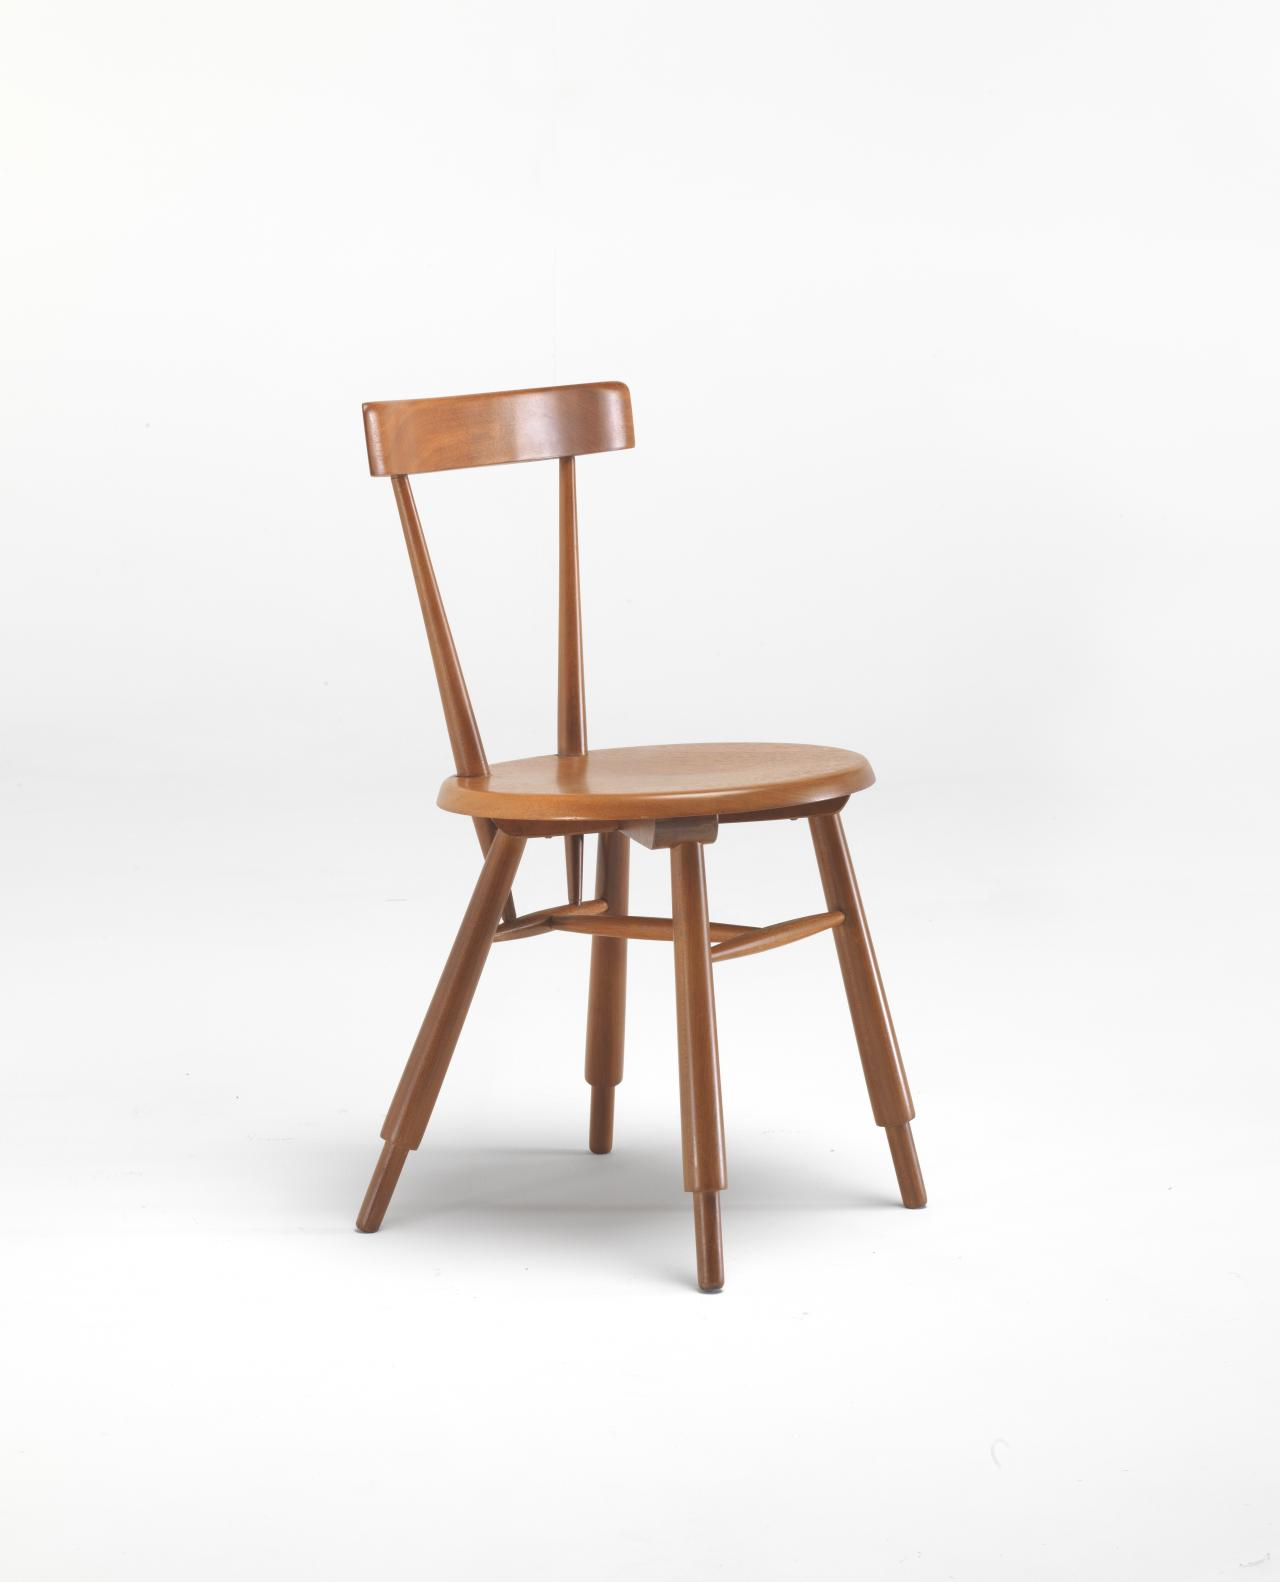 DC1 chair